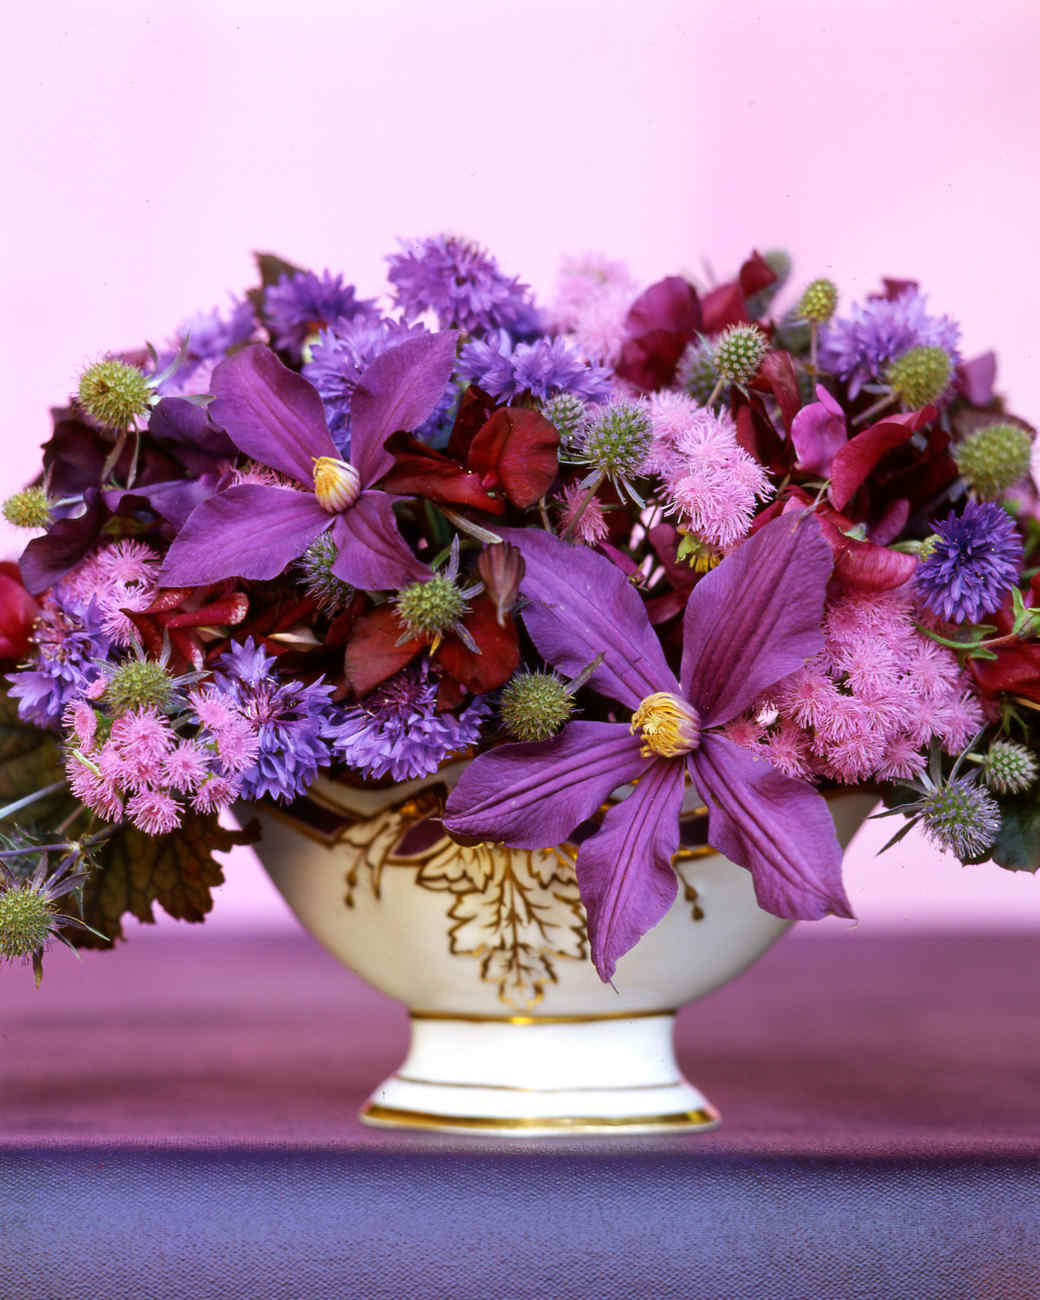 Pics Of Flower Arrangements purple flower arrangements | martha stewart